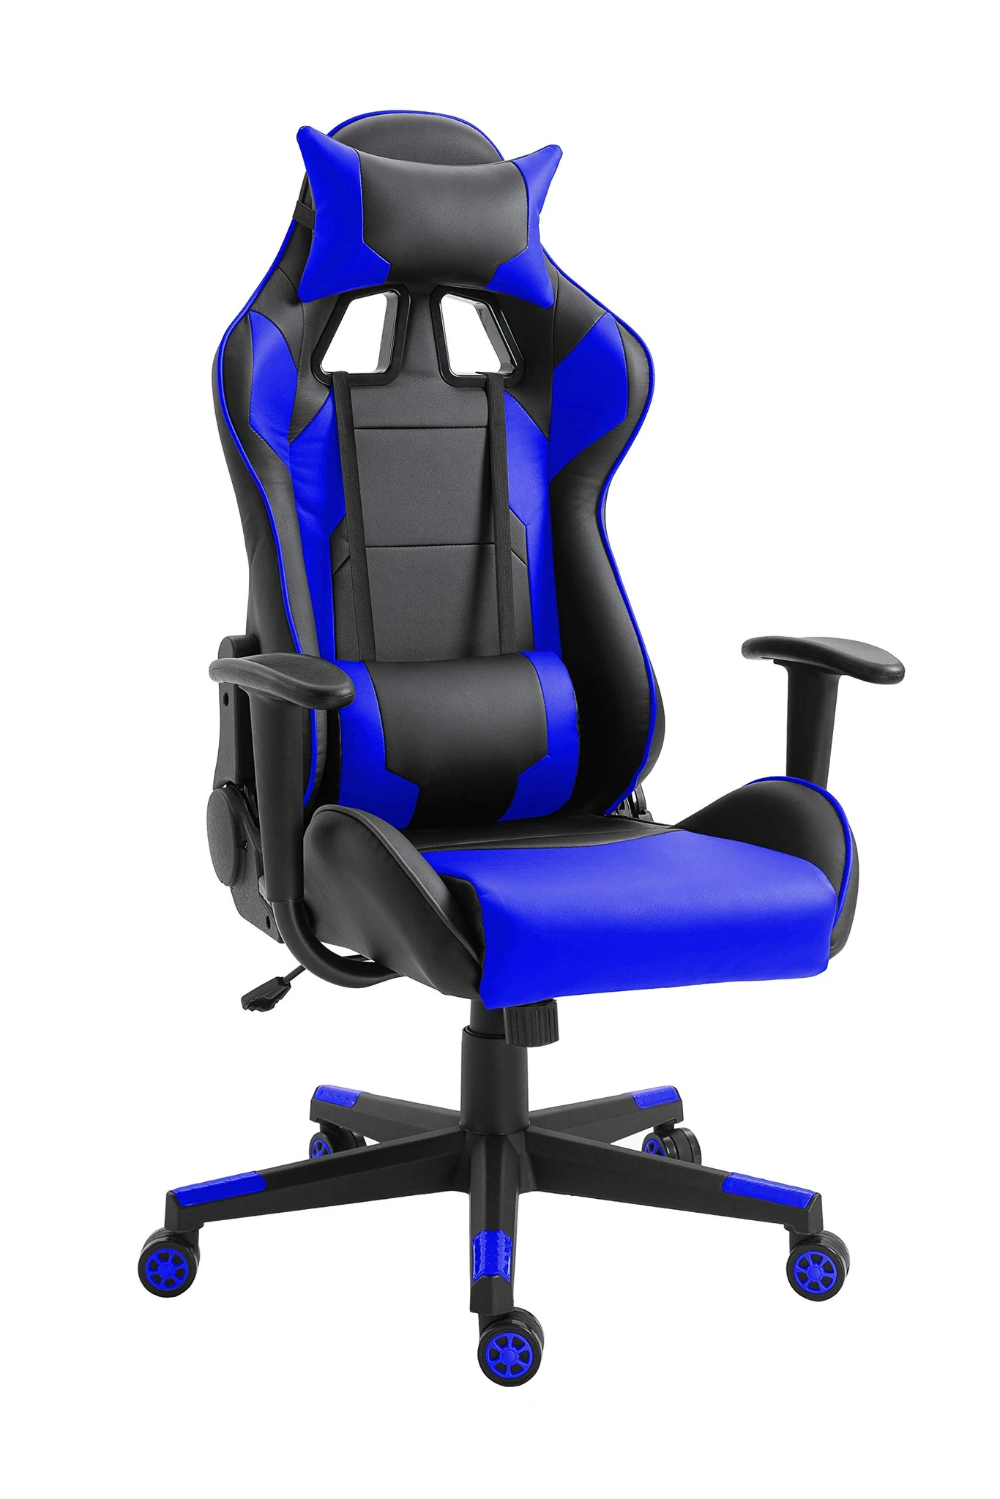 Mahmayi C599 Blue Gaming Chair High Back Computer Chair Pu Leather Des Kimia Living In 2020 Gaming Chair Computer Chair Leather Desk